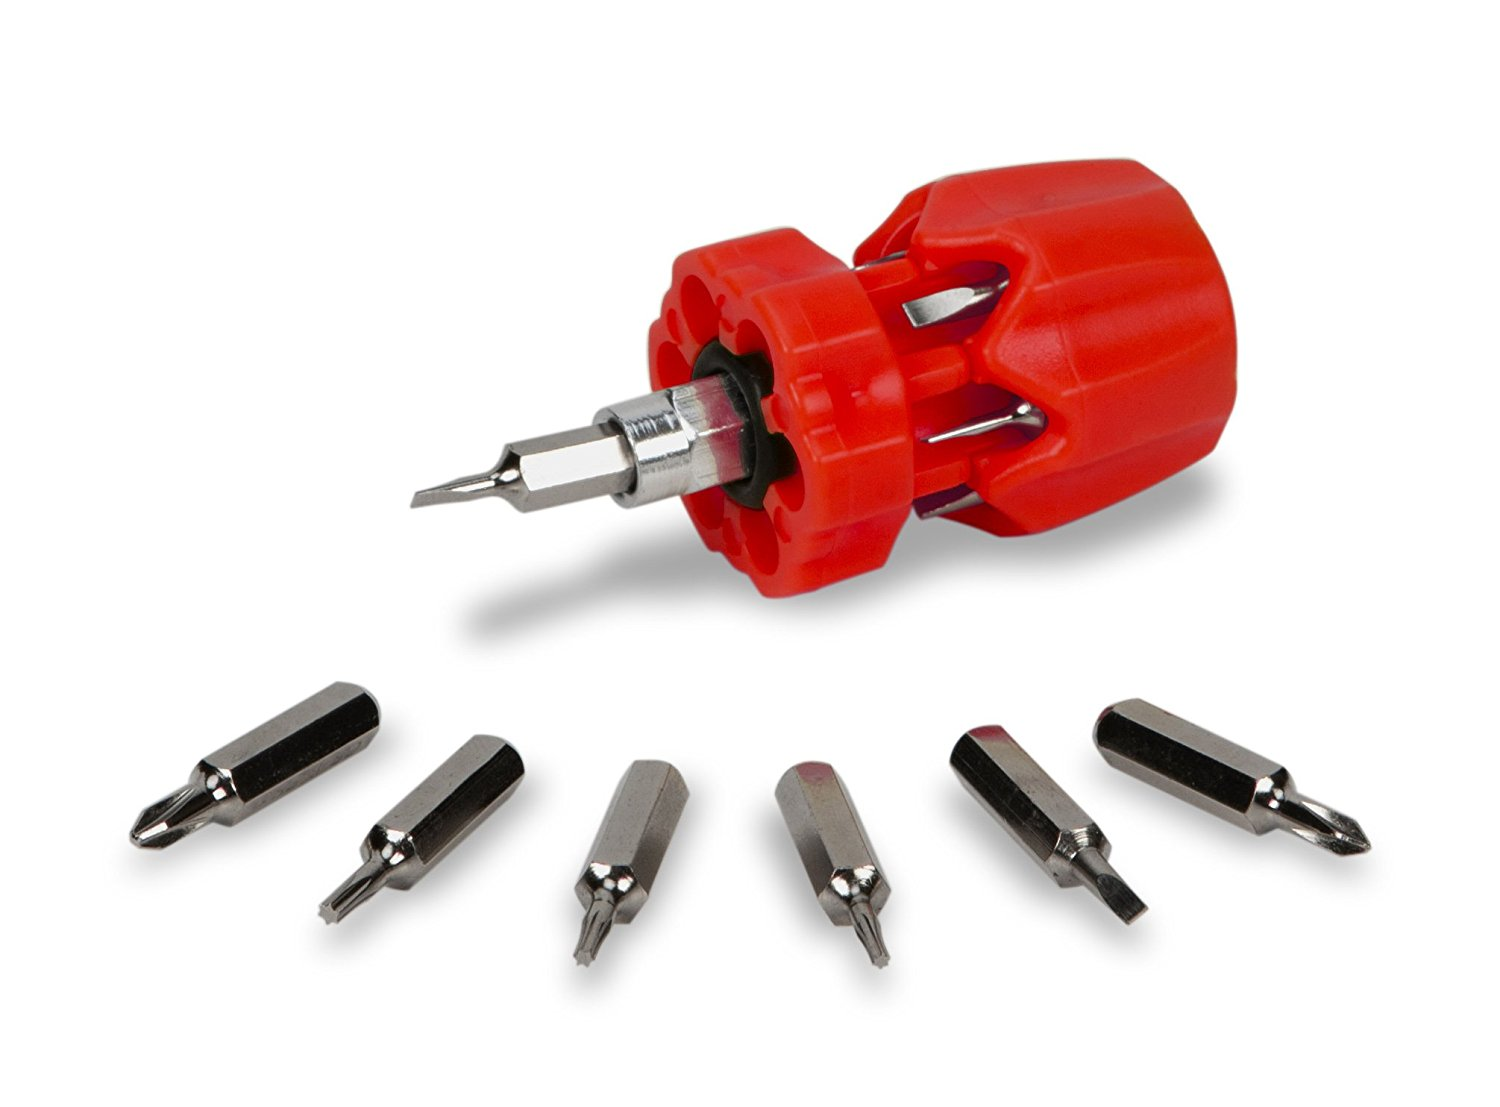 3 Red Eazypower 00607 Tub of 15#2 Phillips //#3 Phillips 3-Inch Stubby Handle Screwdriver